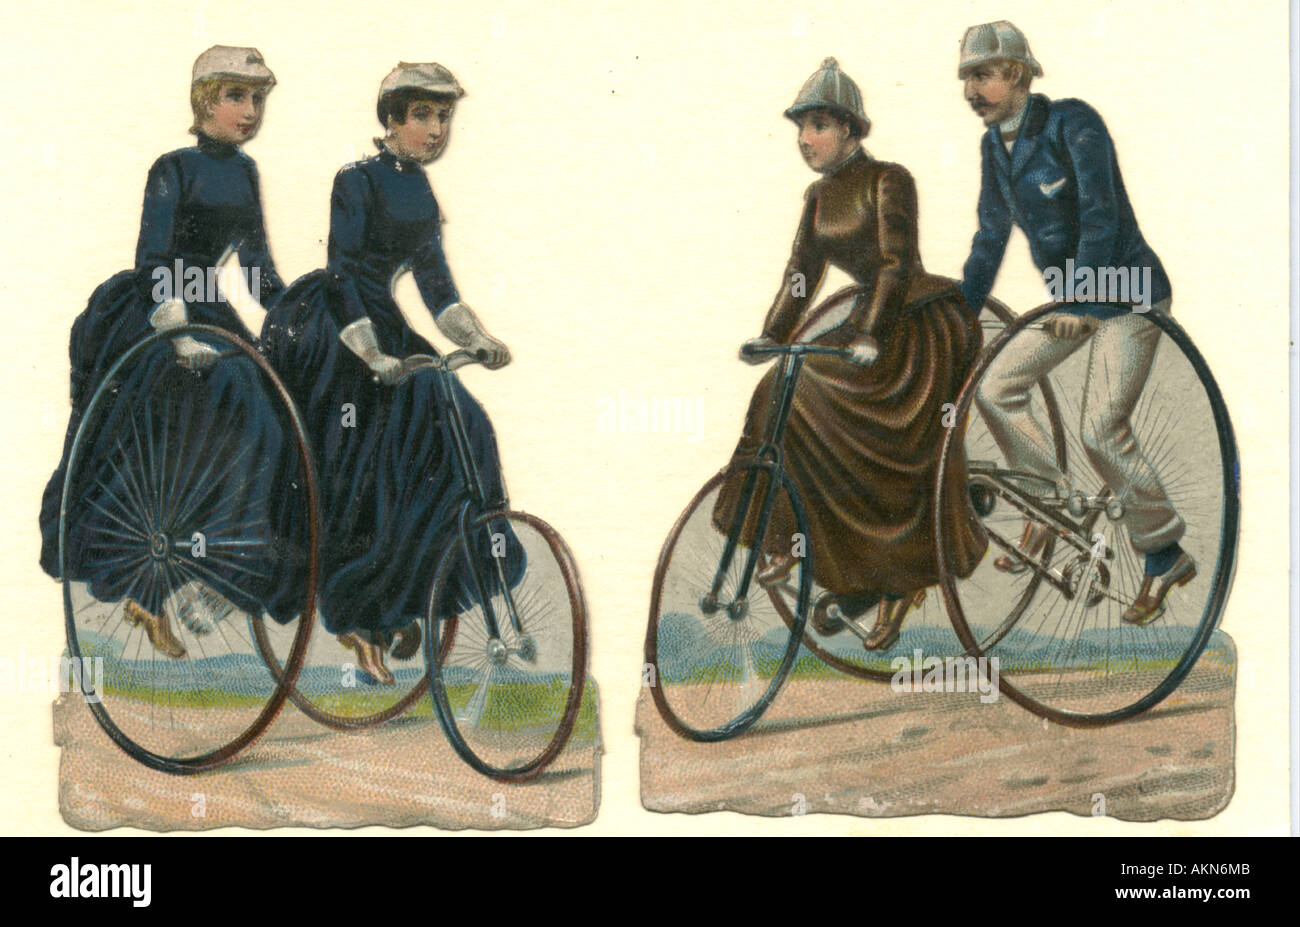 Chromolithographed die cut scraps of tricycling circa 1875 - Stock Image